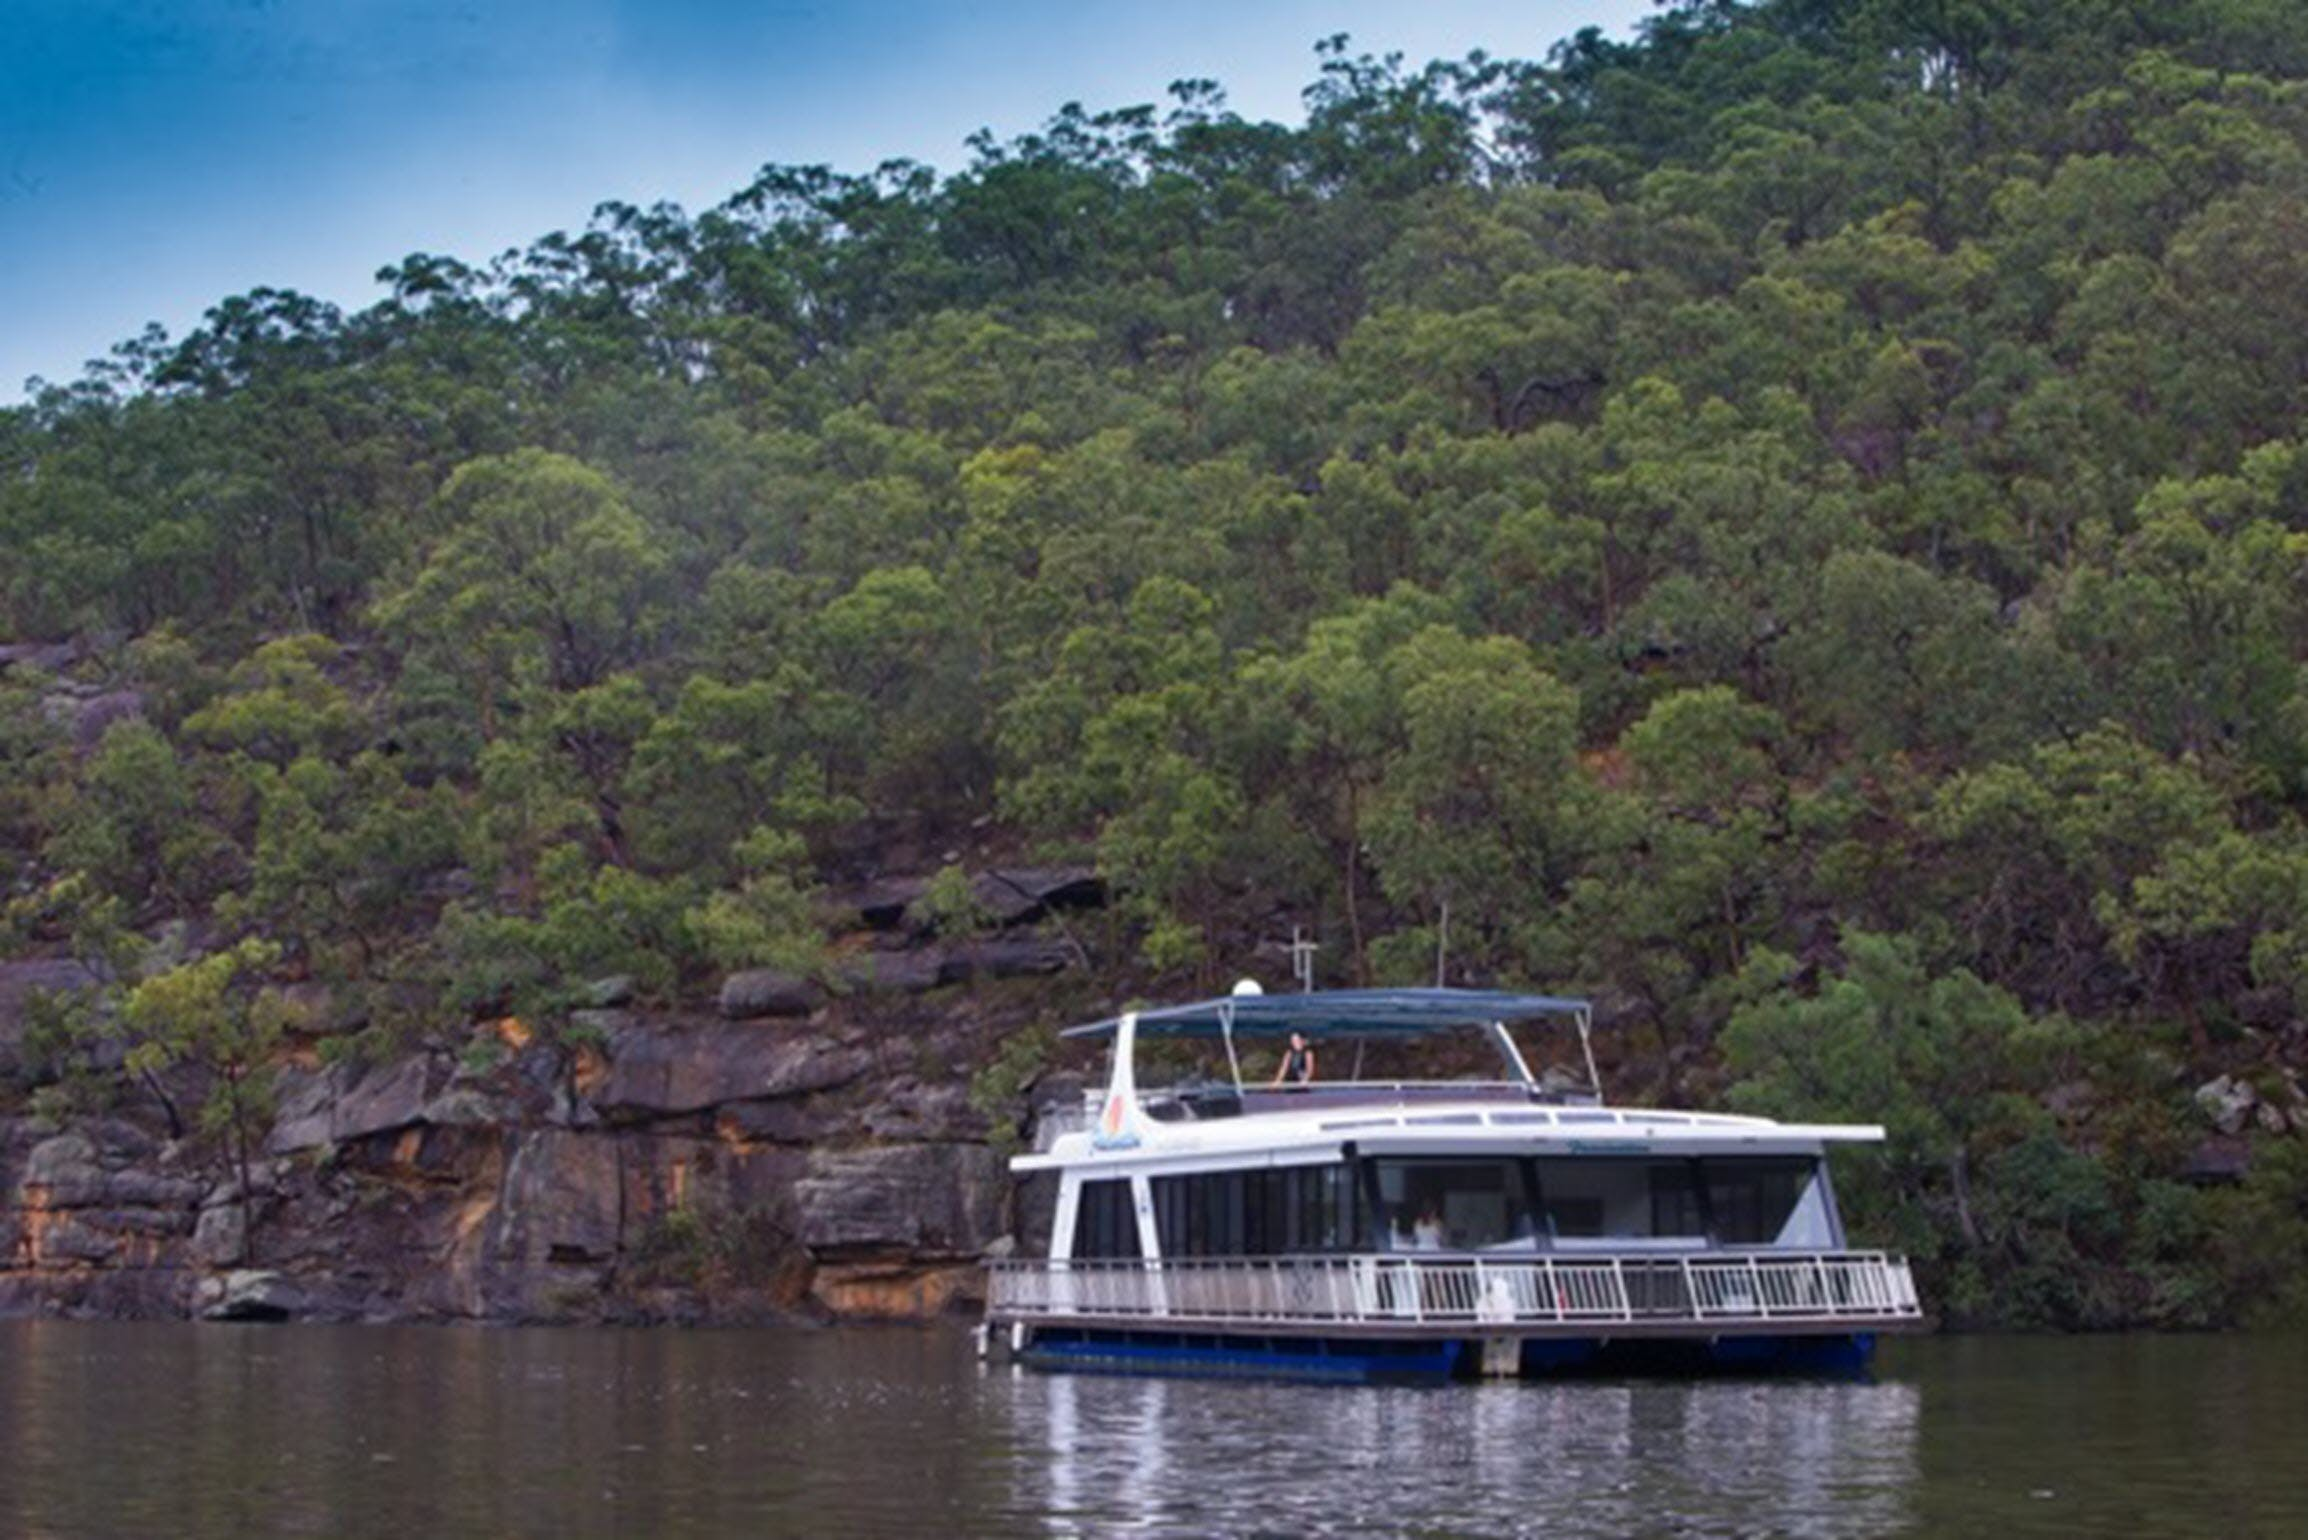 Able Hawkesbury River Houseboats - Kayaks and Dayboats - Accommodation Broken Hill